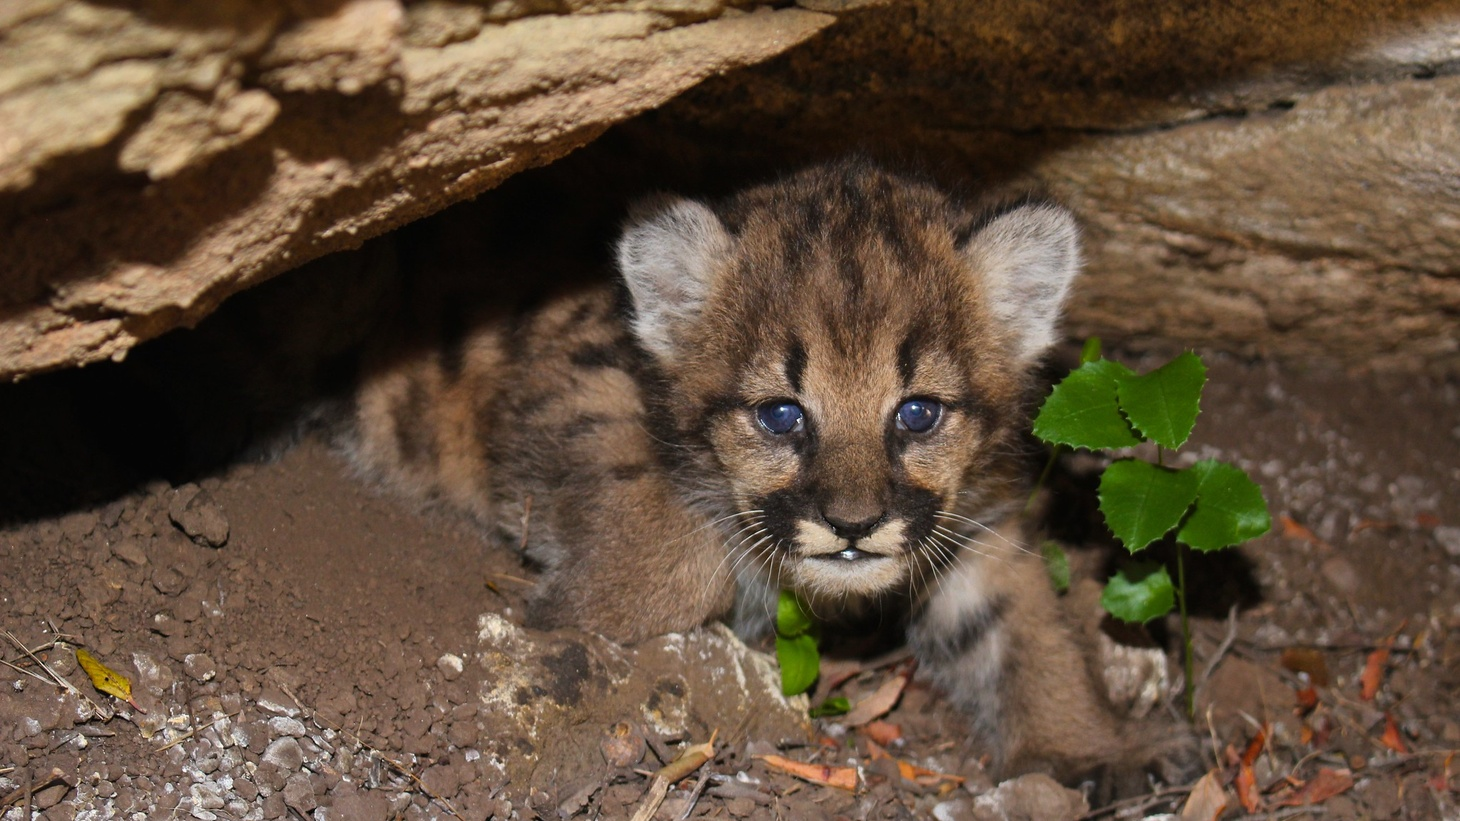 In June of 2018, National Park Service researchers discovered a litter of four mountain lion kittens in the Simi Hills, a small area of habitat wedged between the larger Santa Monica and Santa Susana mountain ranges.